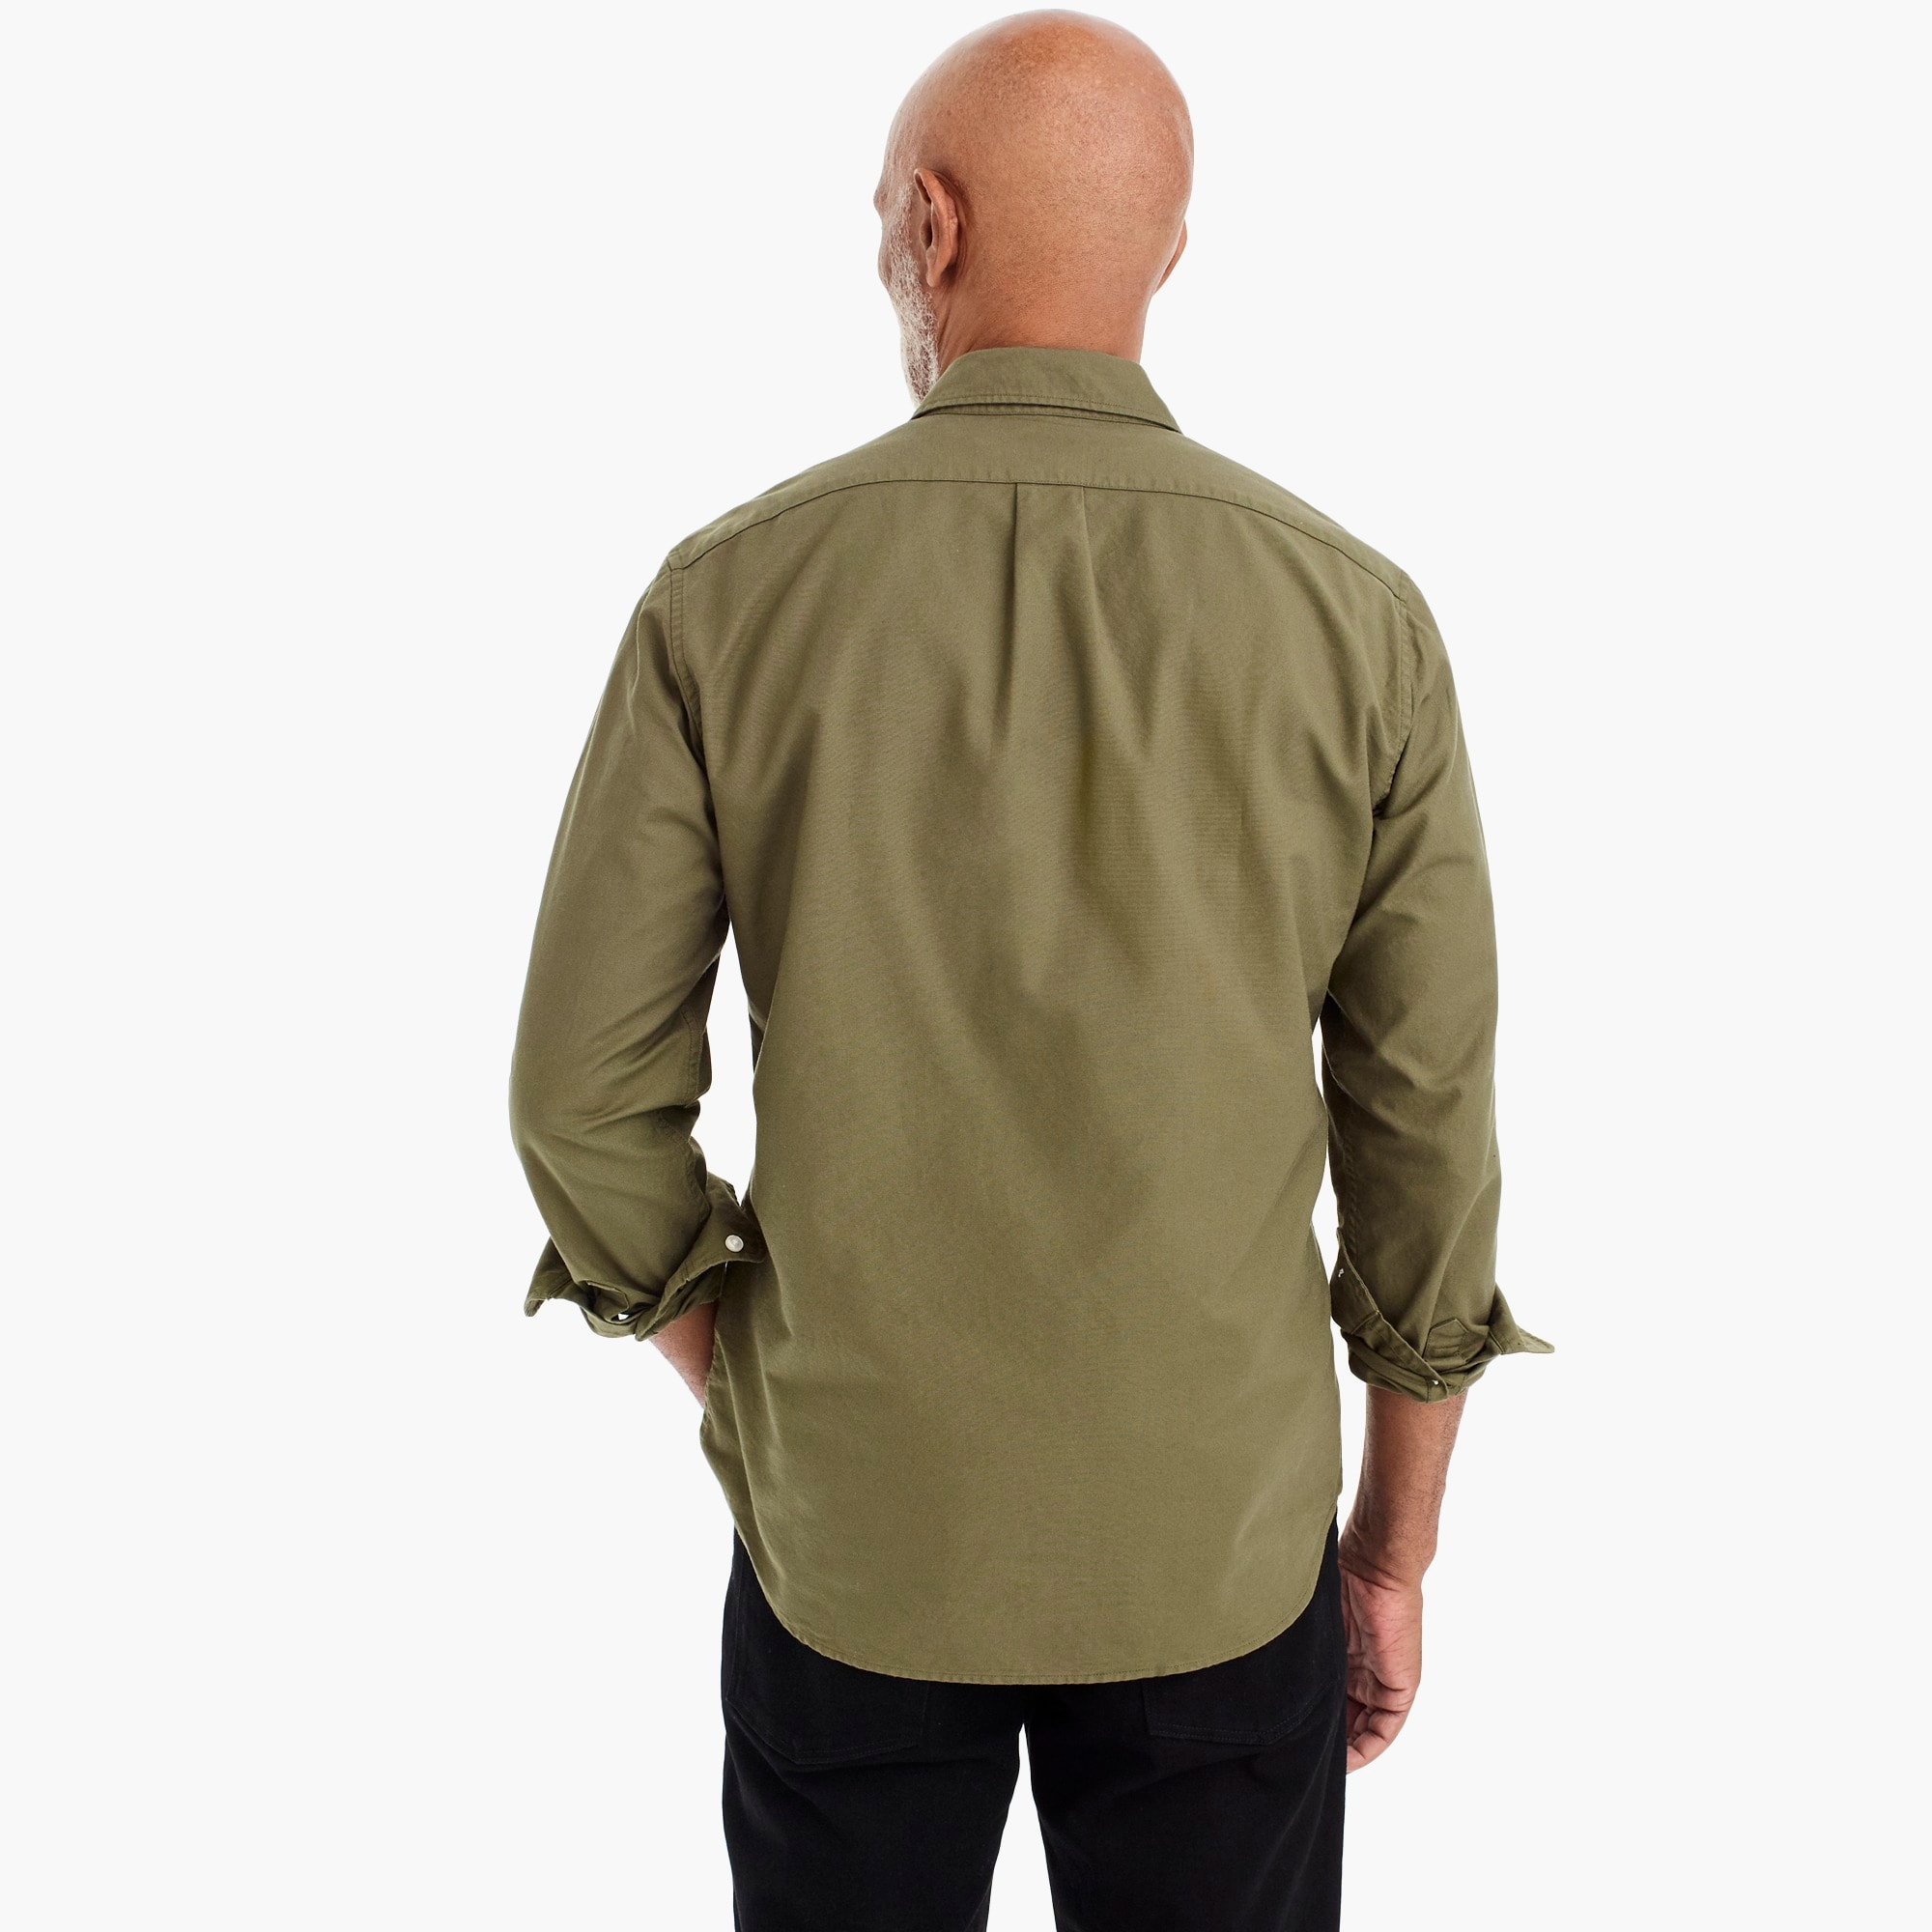 Image 5 for American Pima cotton oxford shirt with mechanical stretch